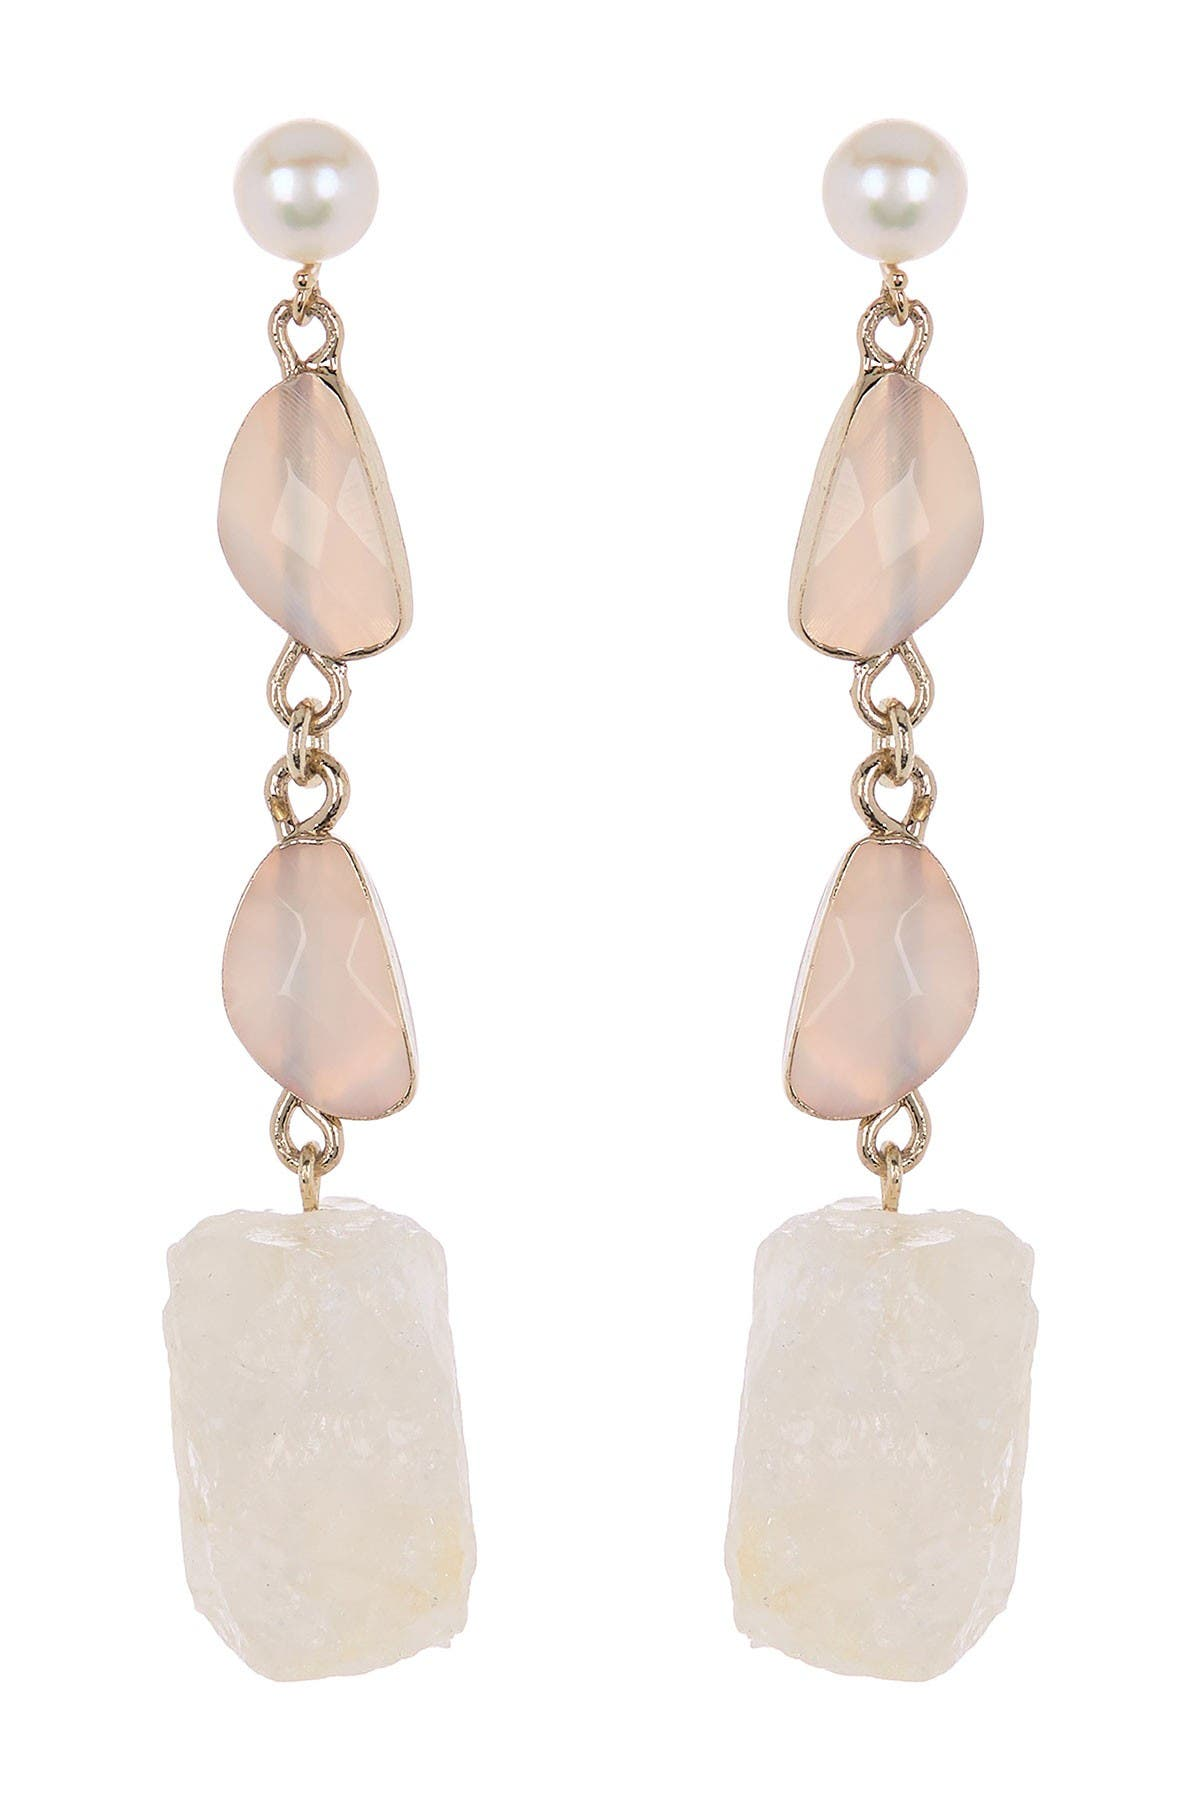 Image of Carolee Eden Gold Plated Agate, Quartz & Freshwater Pearl Drop Earrings